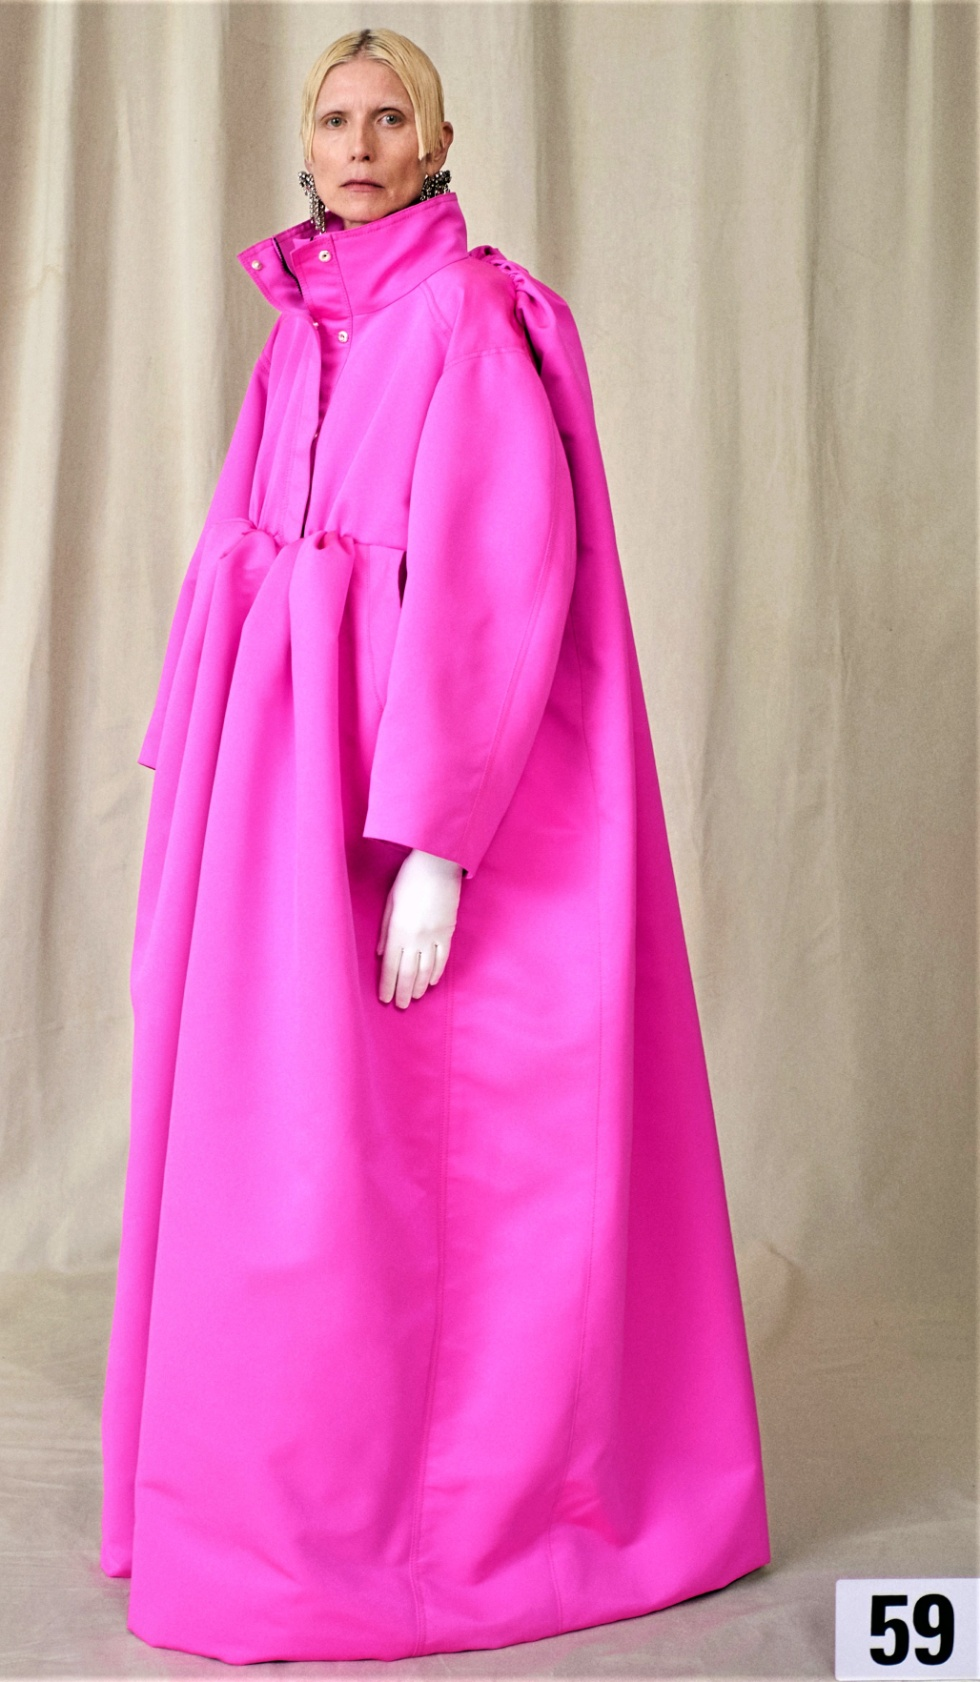 Balenciaga pink gown fall 21 couture cropped.jpg